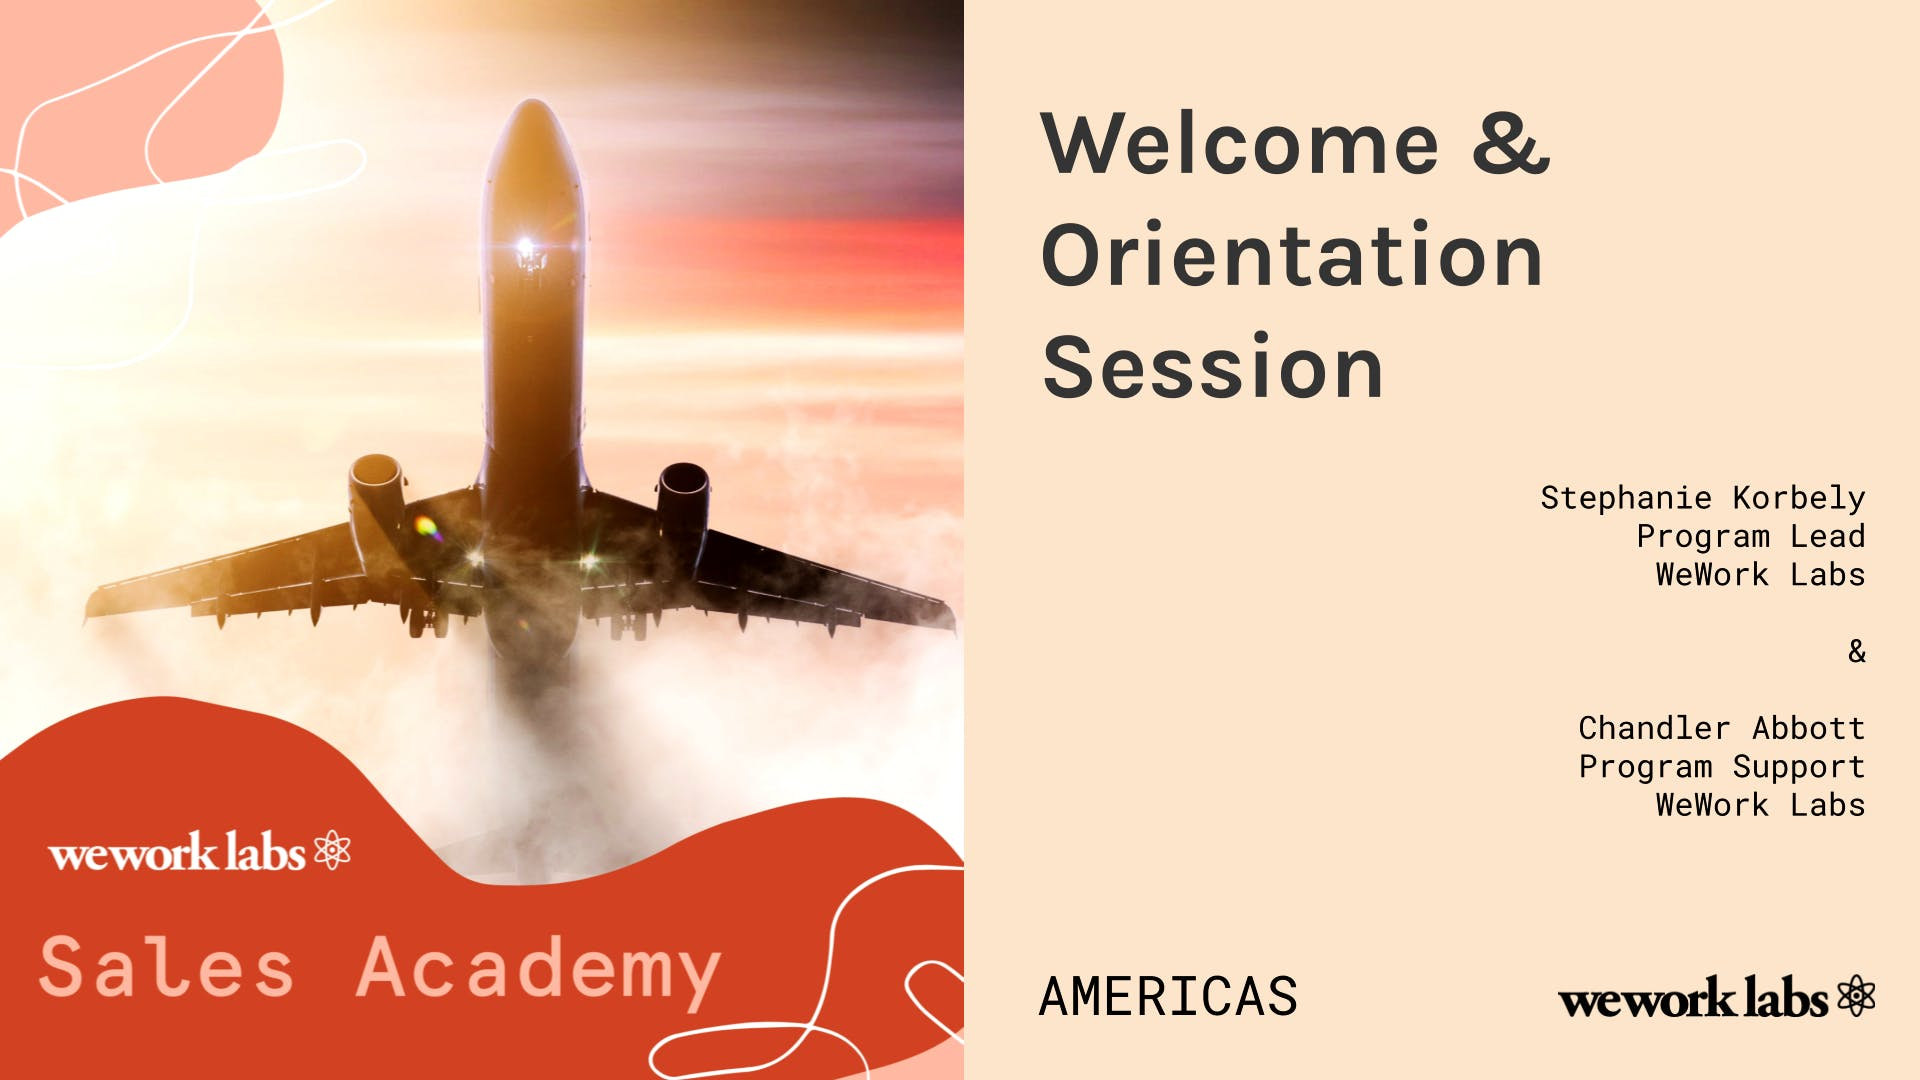 Sales Academy (Americas): Welcome & Orientation Session